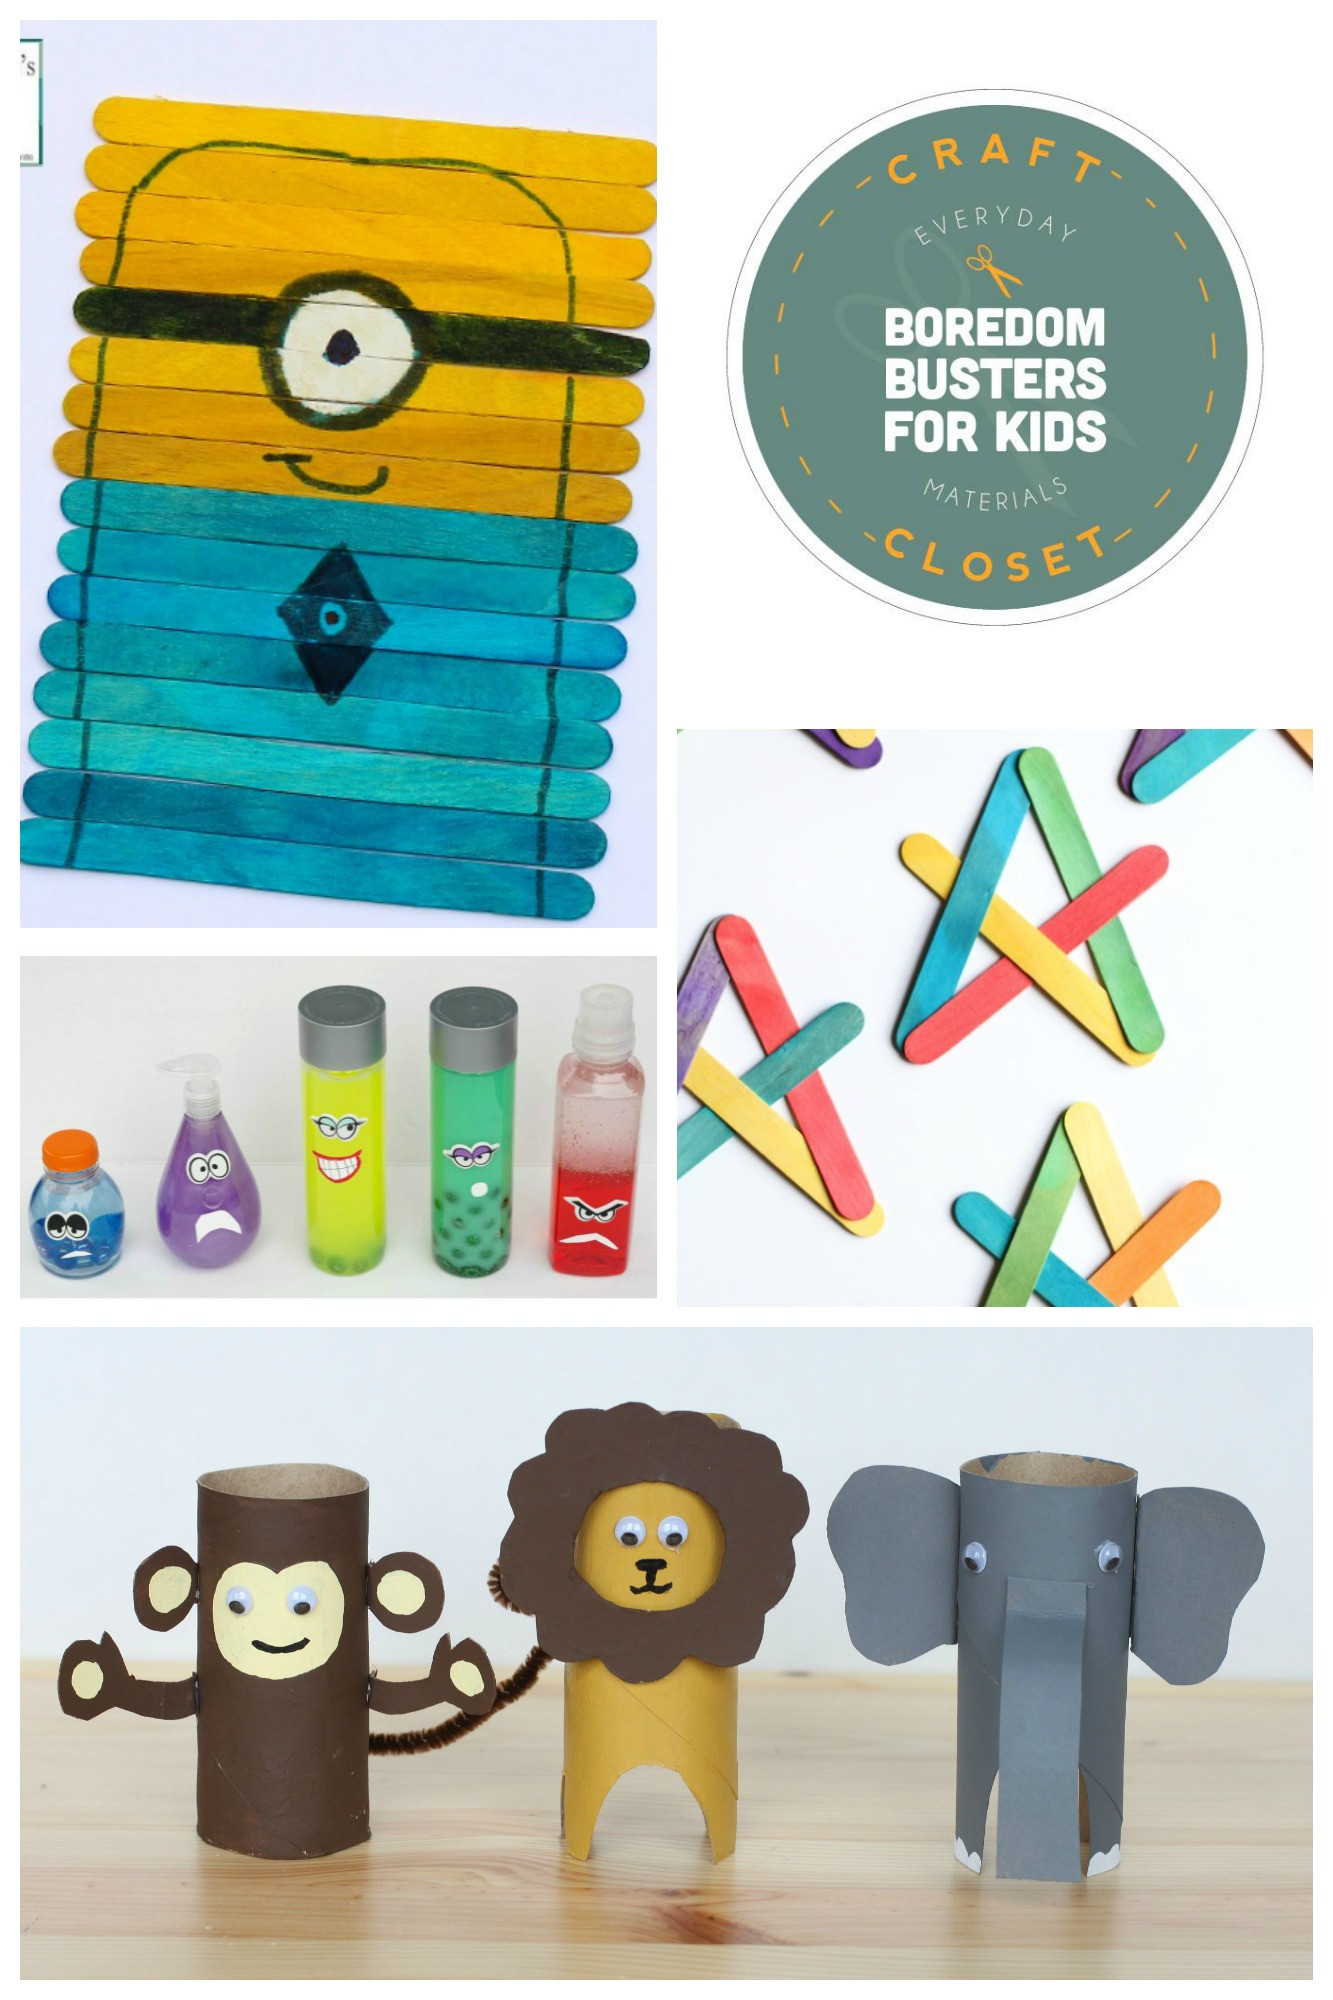 Best ideas about Crafts Fir Kids . Save or Pin 25 Crafts and Activities for Kids Using Everyday Now.